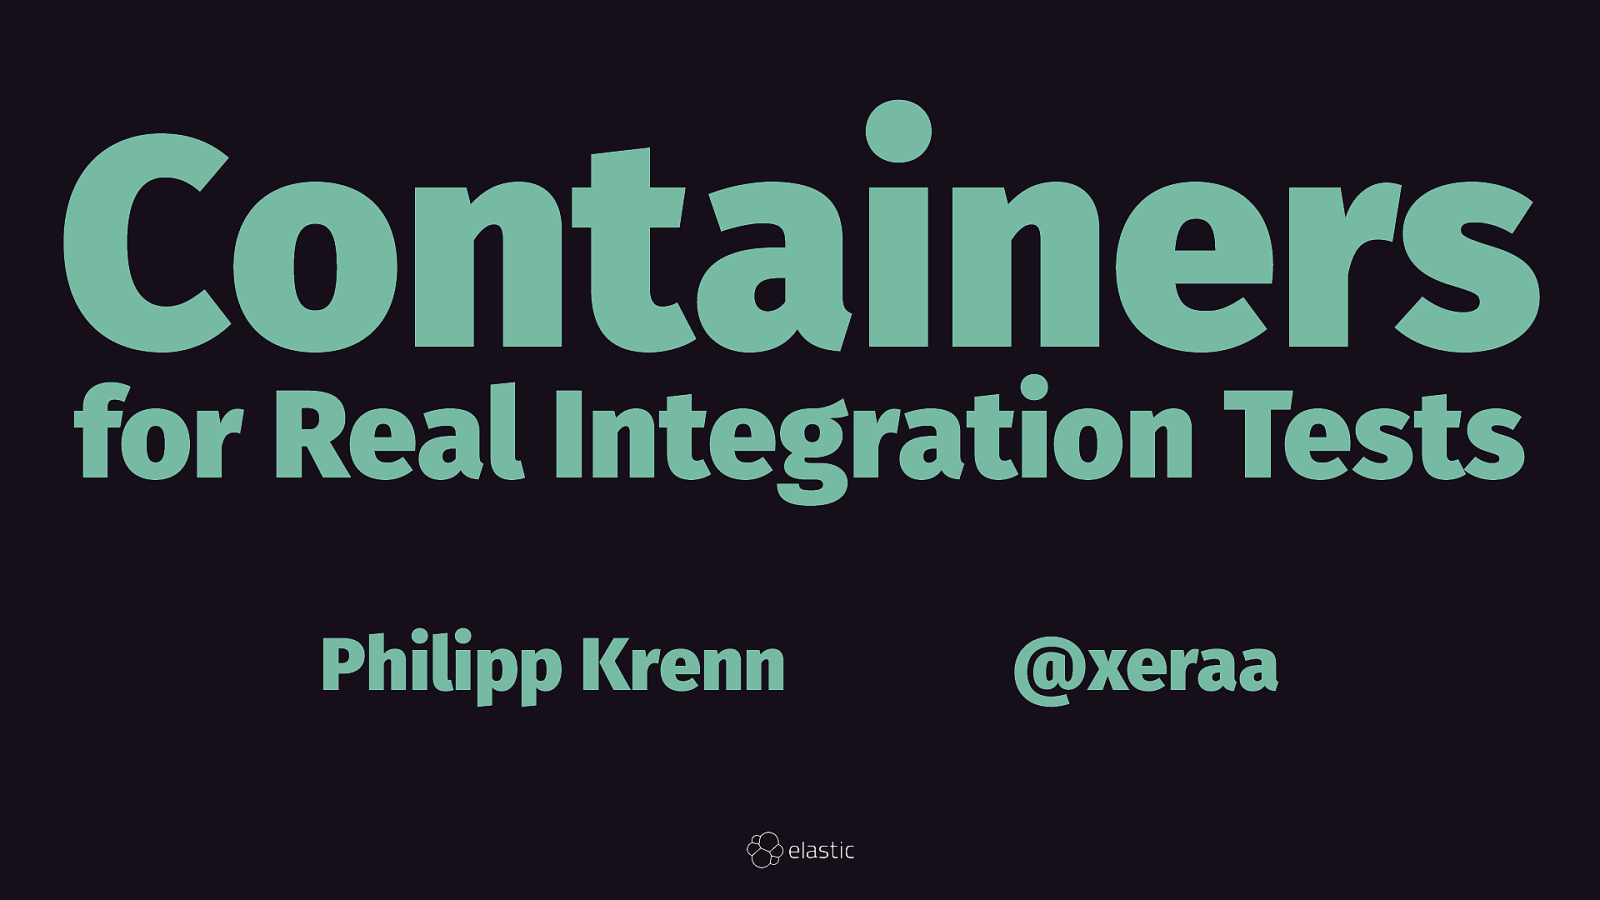 Containers for Real Integration Tests